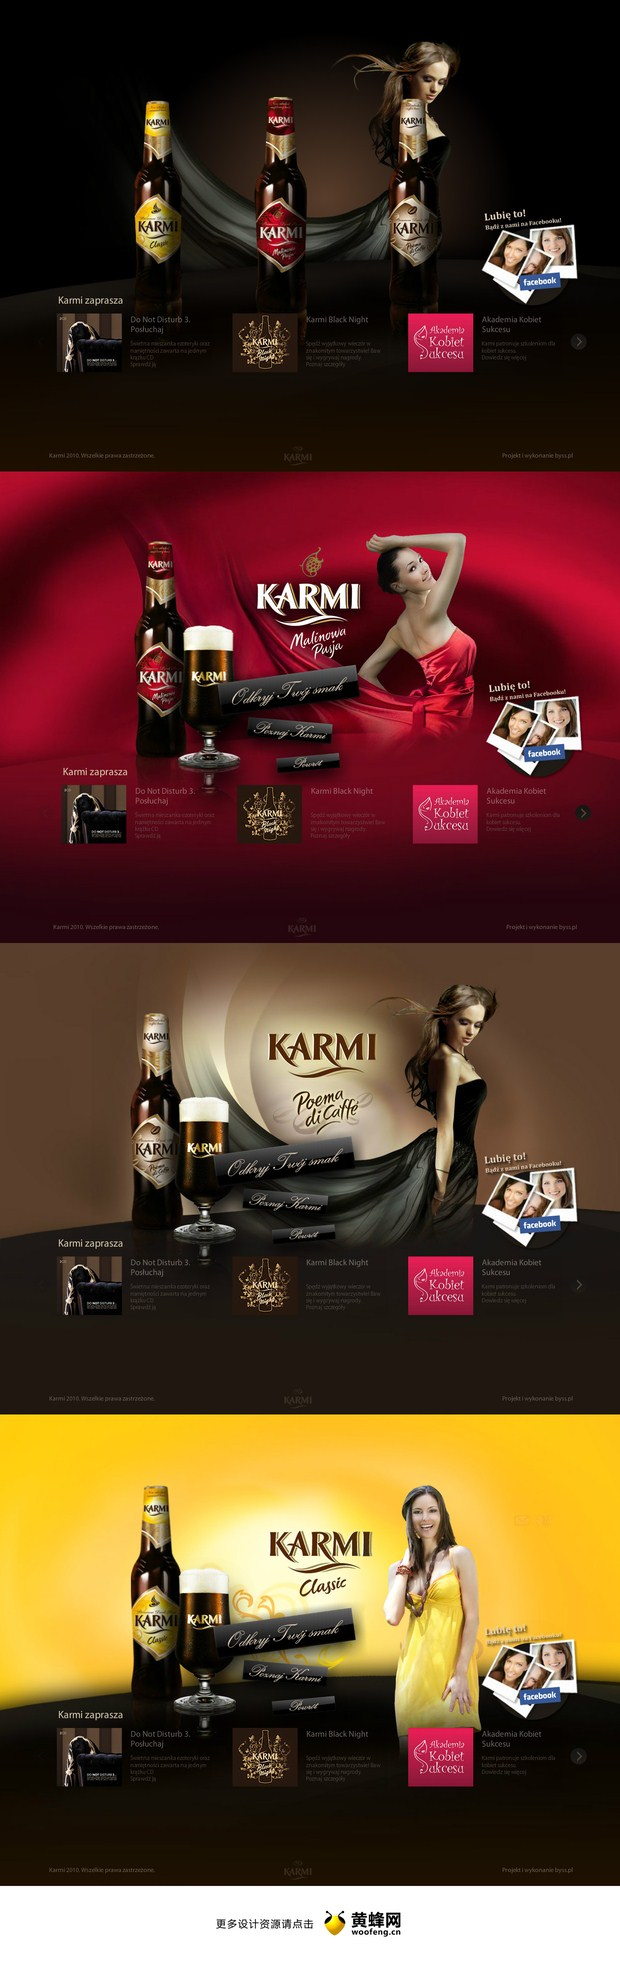 karmi web design inspiration